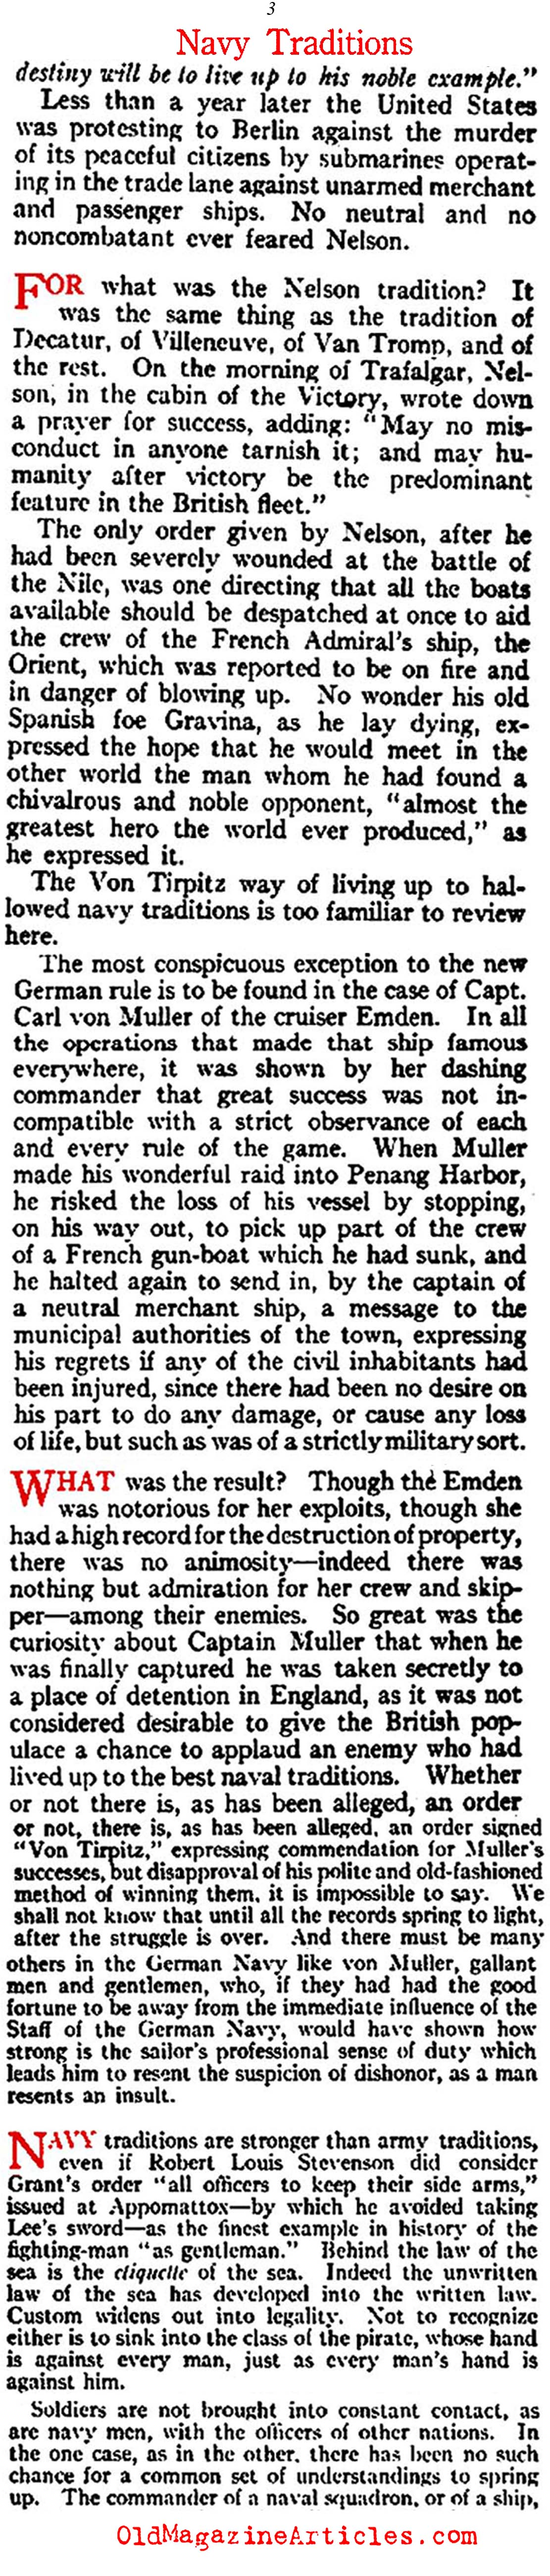 The Lusitania Attack and the Violation of Naval Traditions (Vanity Fair Magazine, 1915)